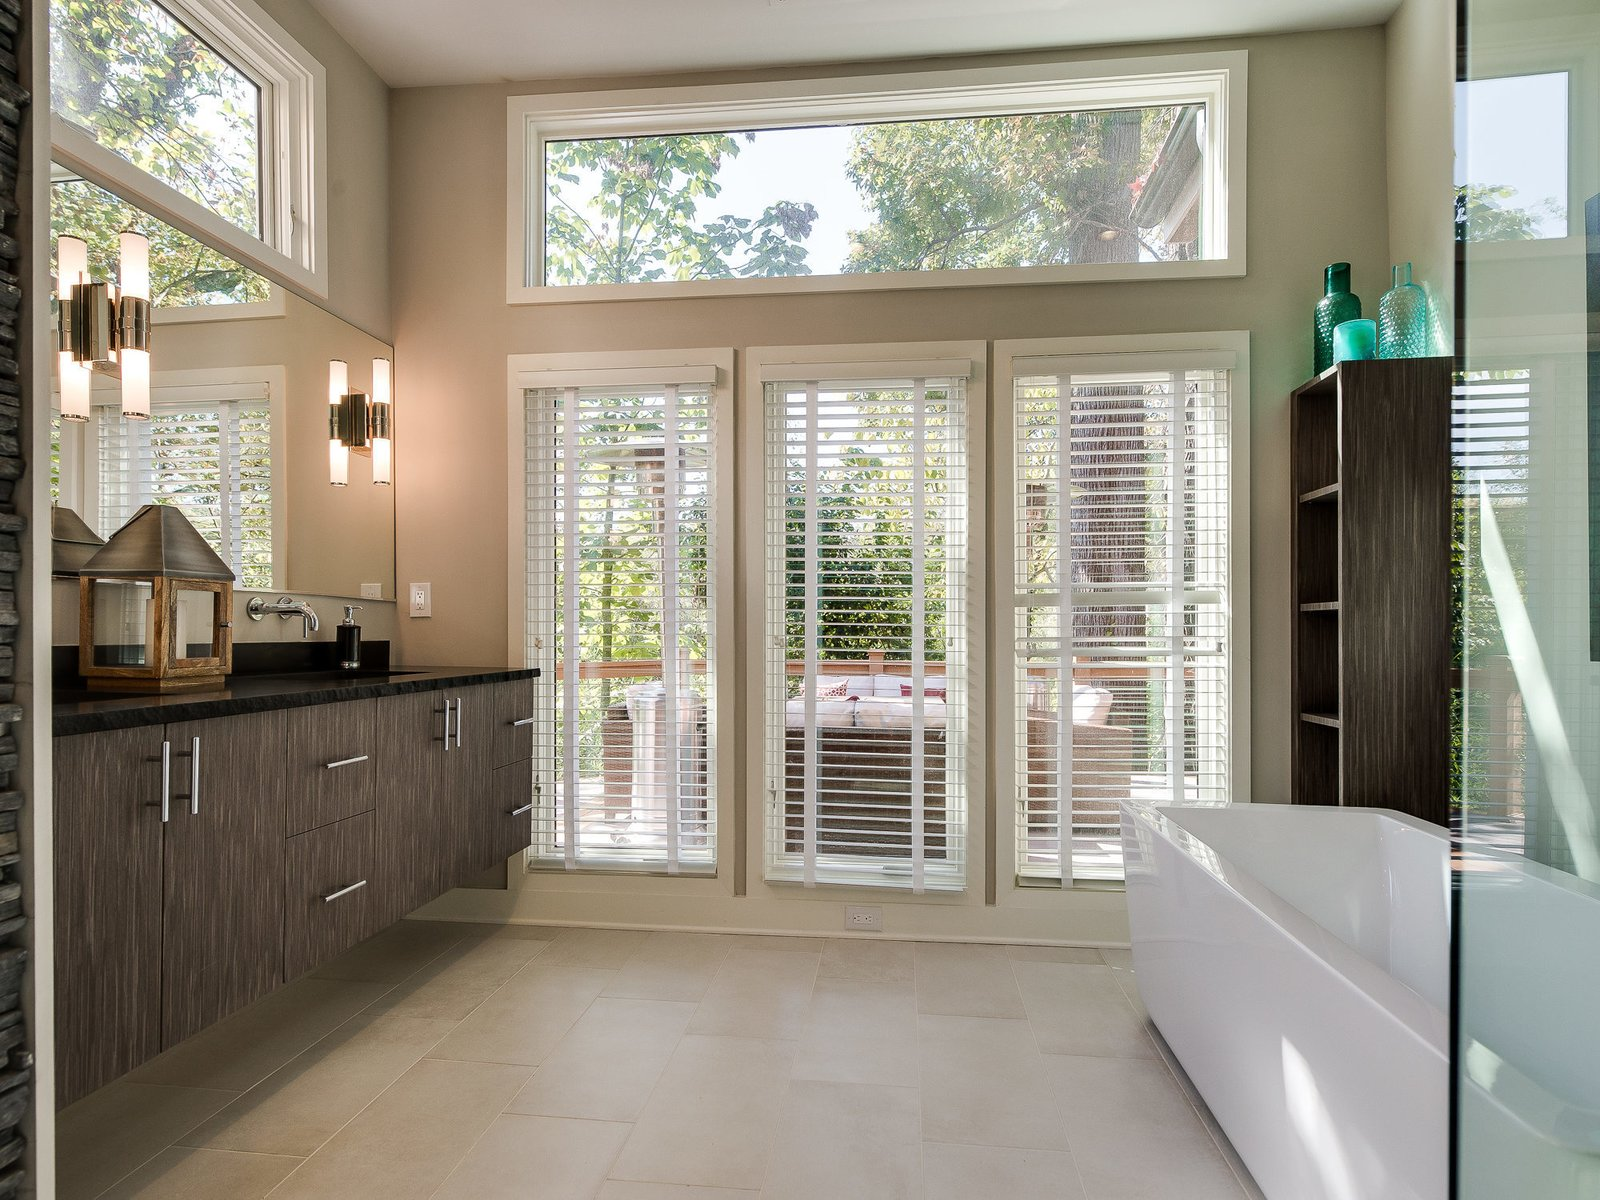 A frosted glass pocket door leads to the master bathroom, which enjoys a large free-standing tub and a floating double vanity.